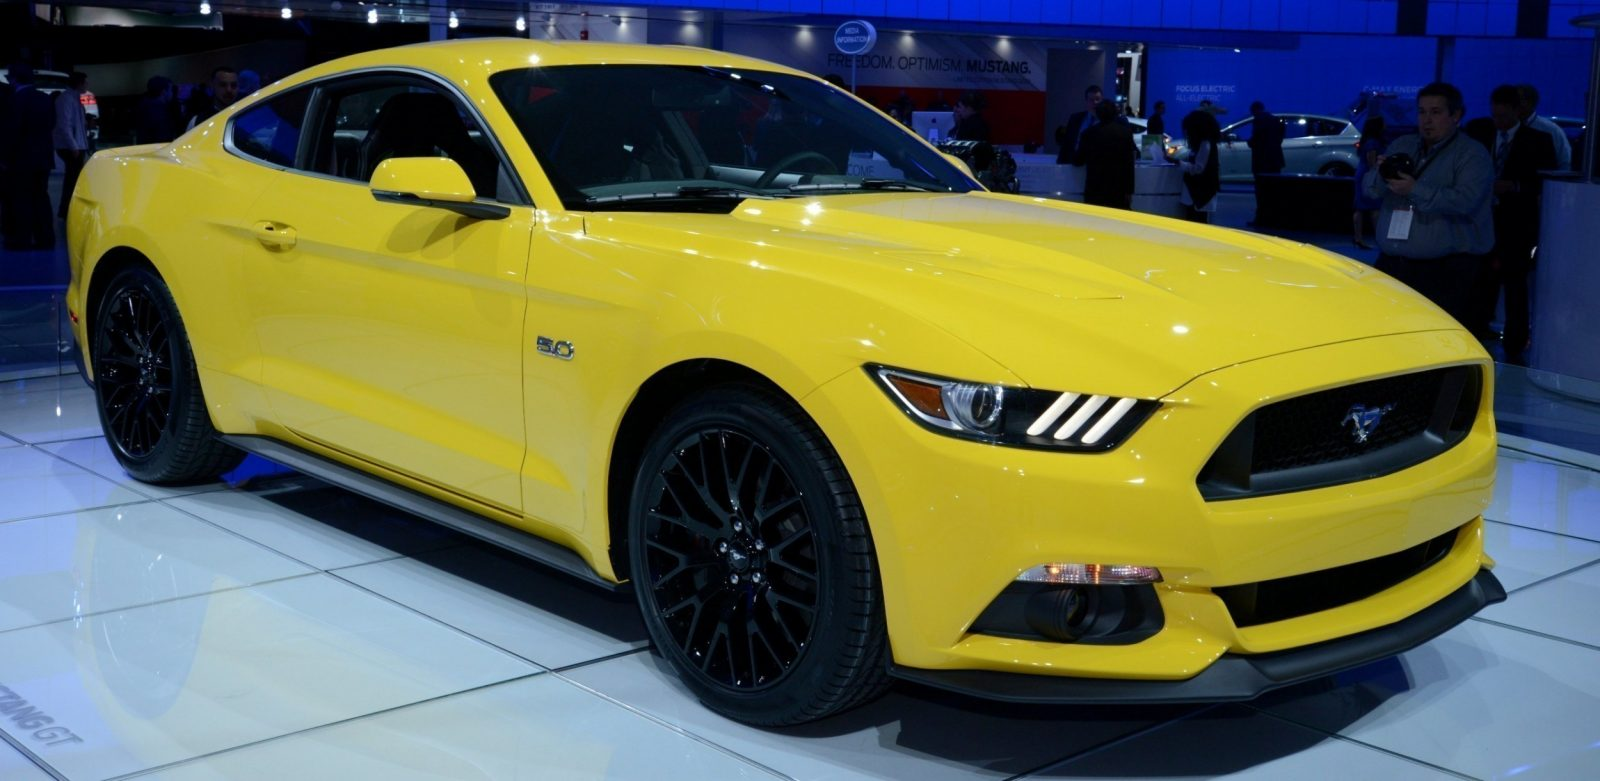 2015 Ford Mustang GT -- Mean, Lean and Ready To Brawl in Latest Real-Life Photos -- Yellow GT 18